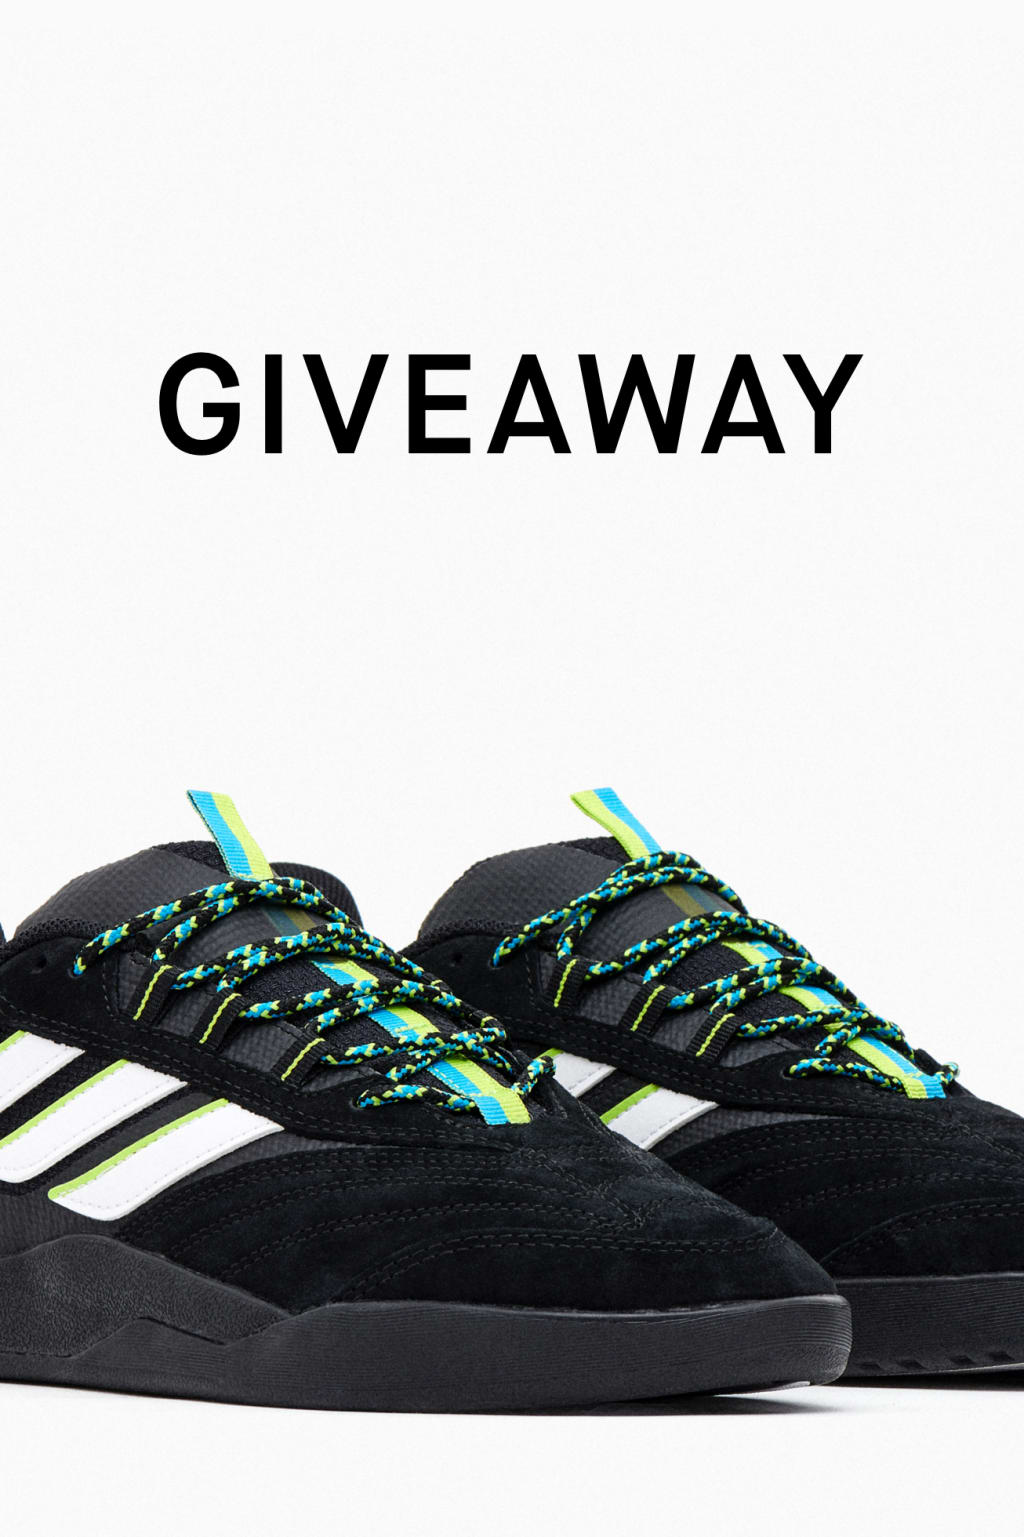 Win Mike Arnold's New adidas Shoe & Board